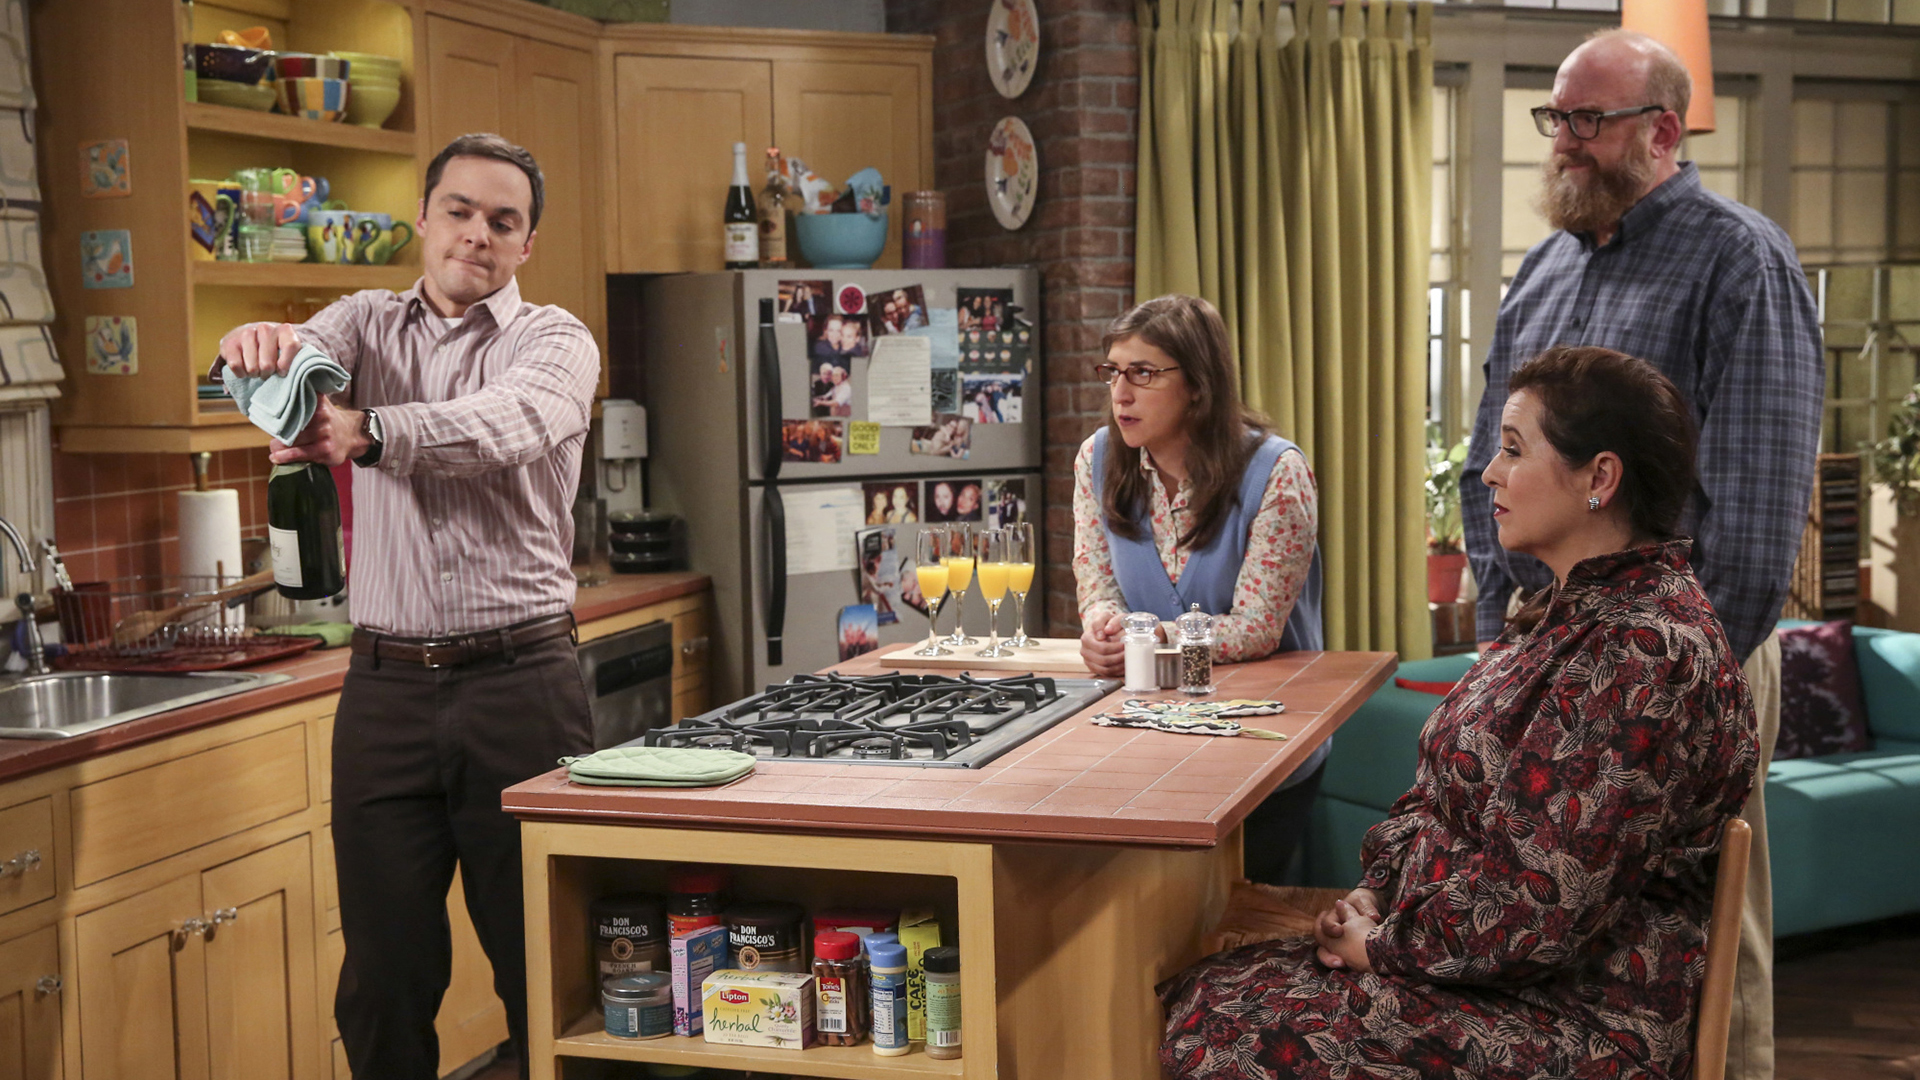 Sheldon struggles to open a bottle of champagne.